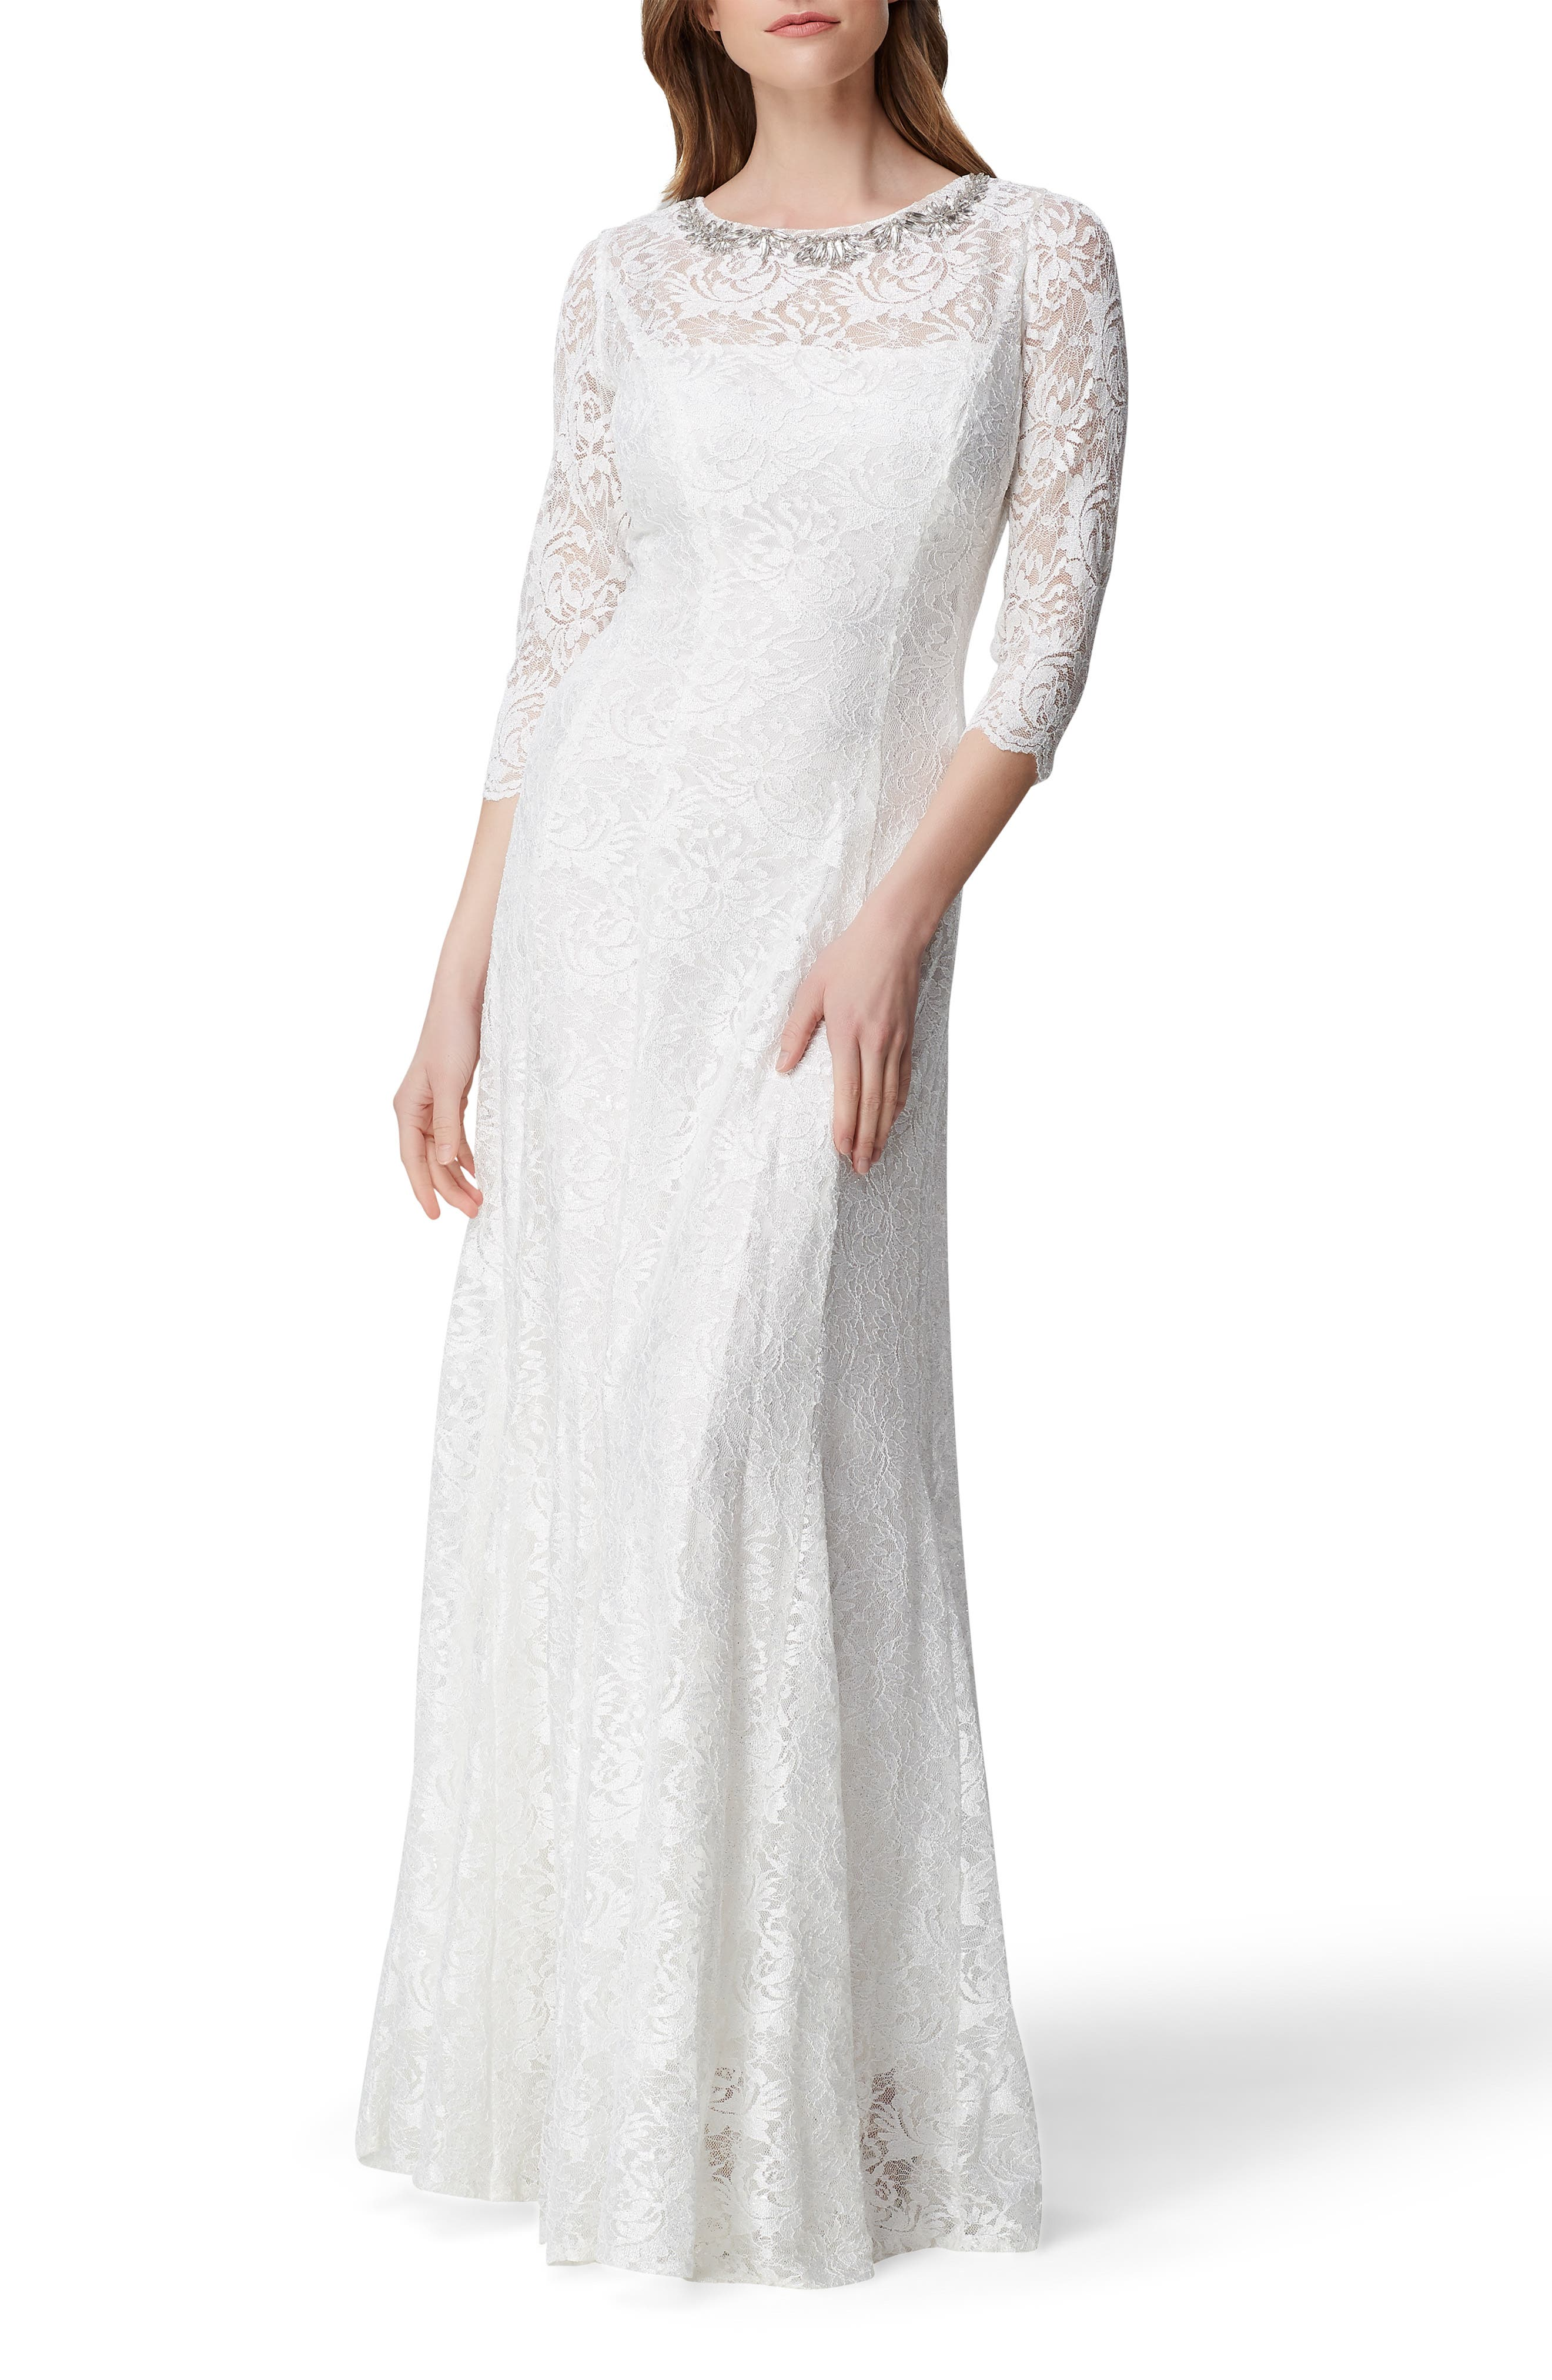 70s Prom, Formal, Evening, Party Dresses Womens Tahari Embellished Lace Gown Size 16 - Ivory $259.00 AT vintagedancer.com